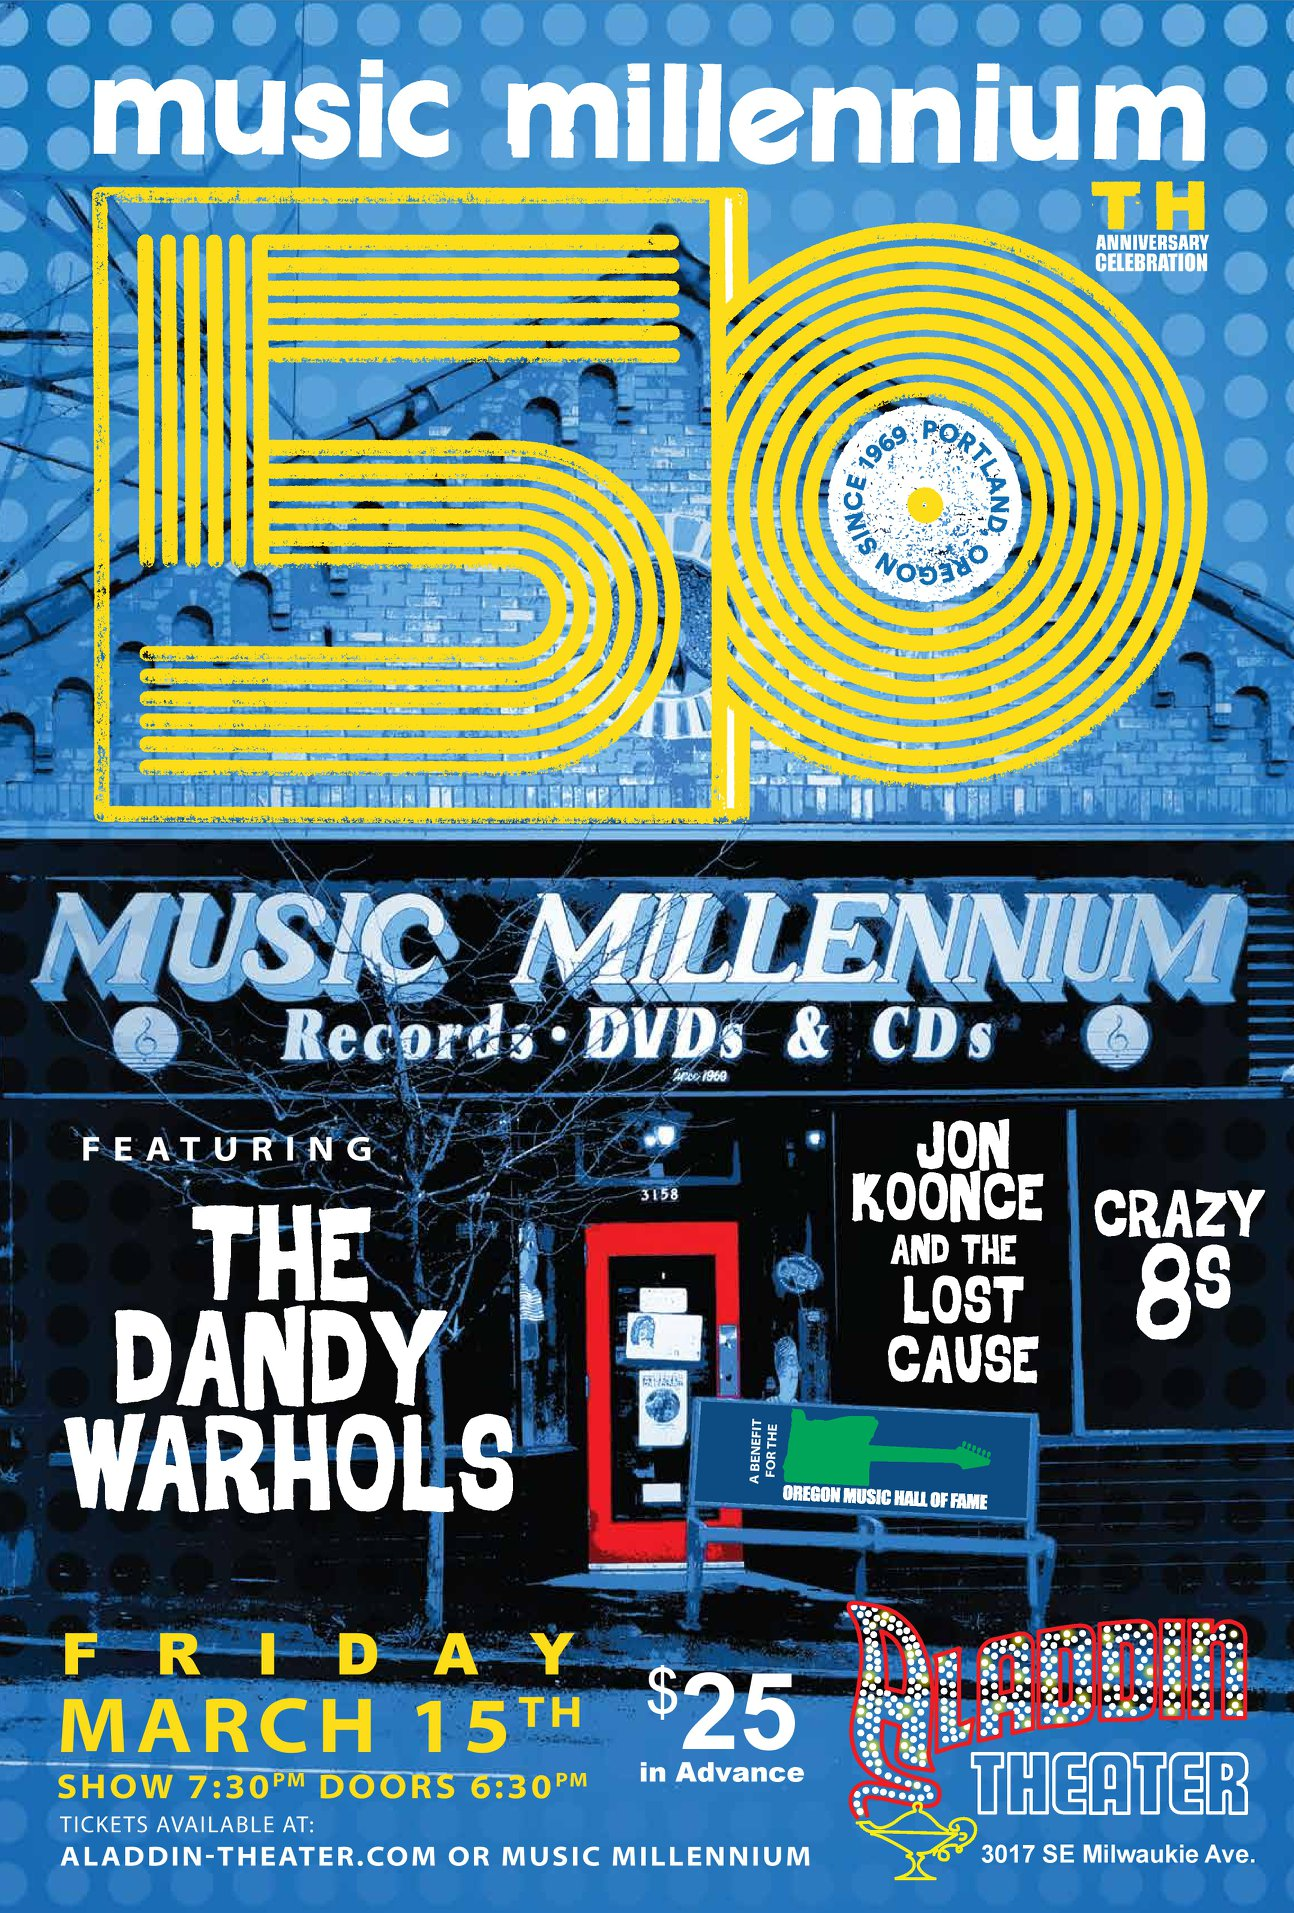 Music Millennium's 50th Anniversary